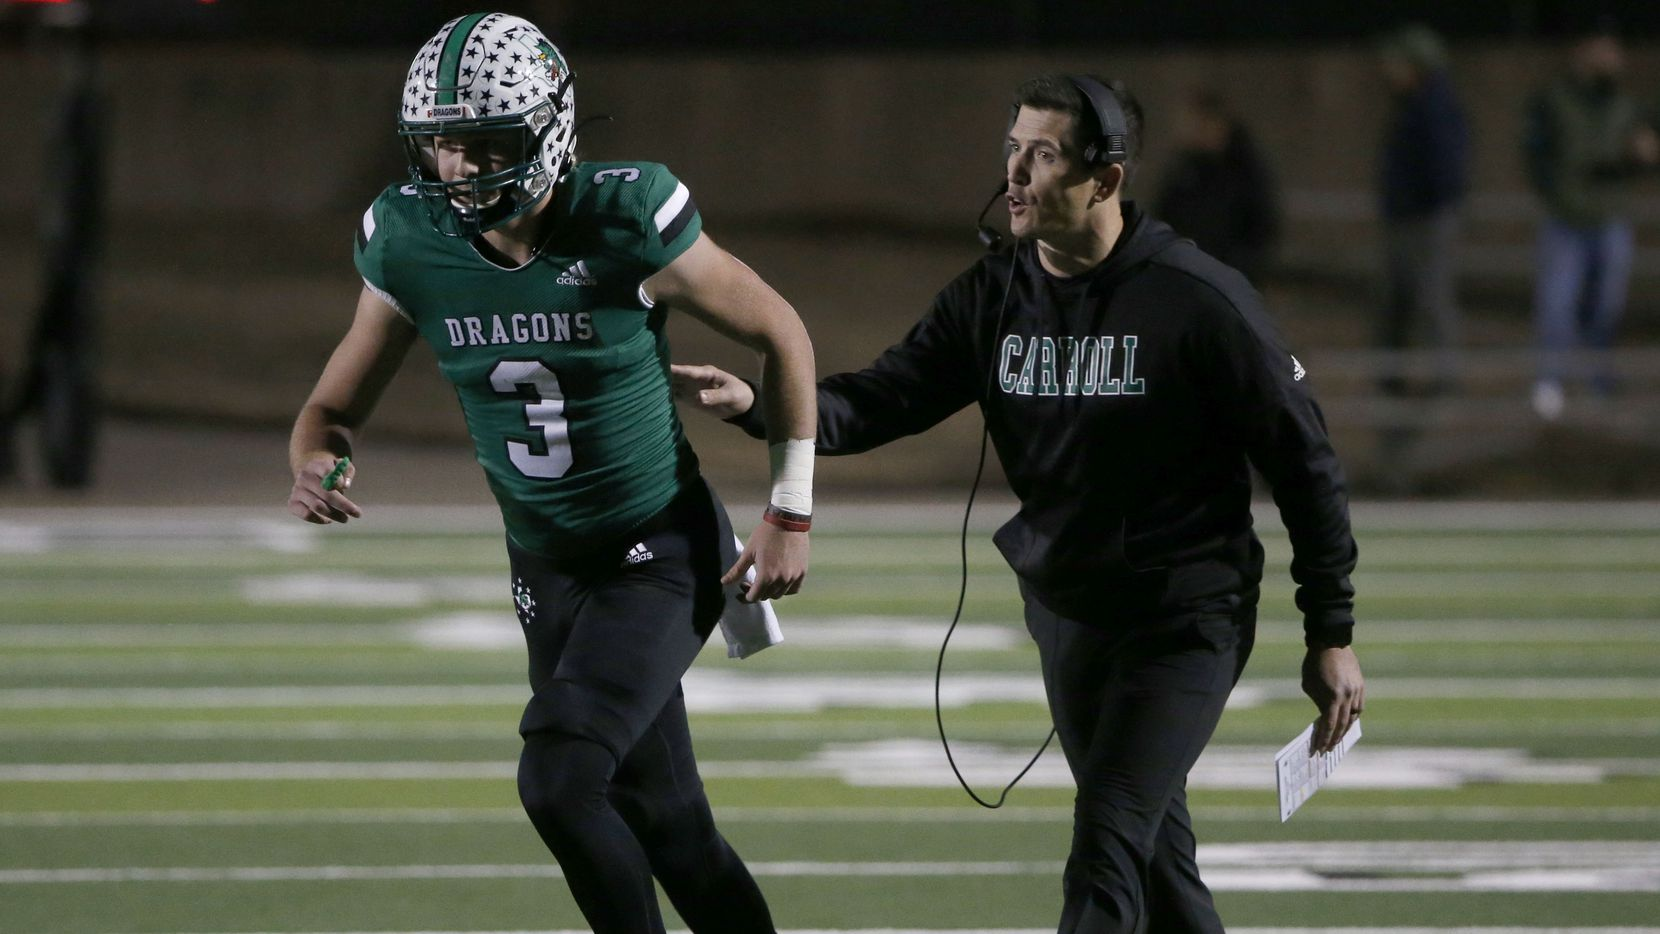 Southlake quarterback Quinn Ewers (3) gets directions from head coach Riley Dodge as they played Lewisville, during the first half of their bi-district playoff high school football game on Friday Nov. 15, 2019.